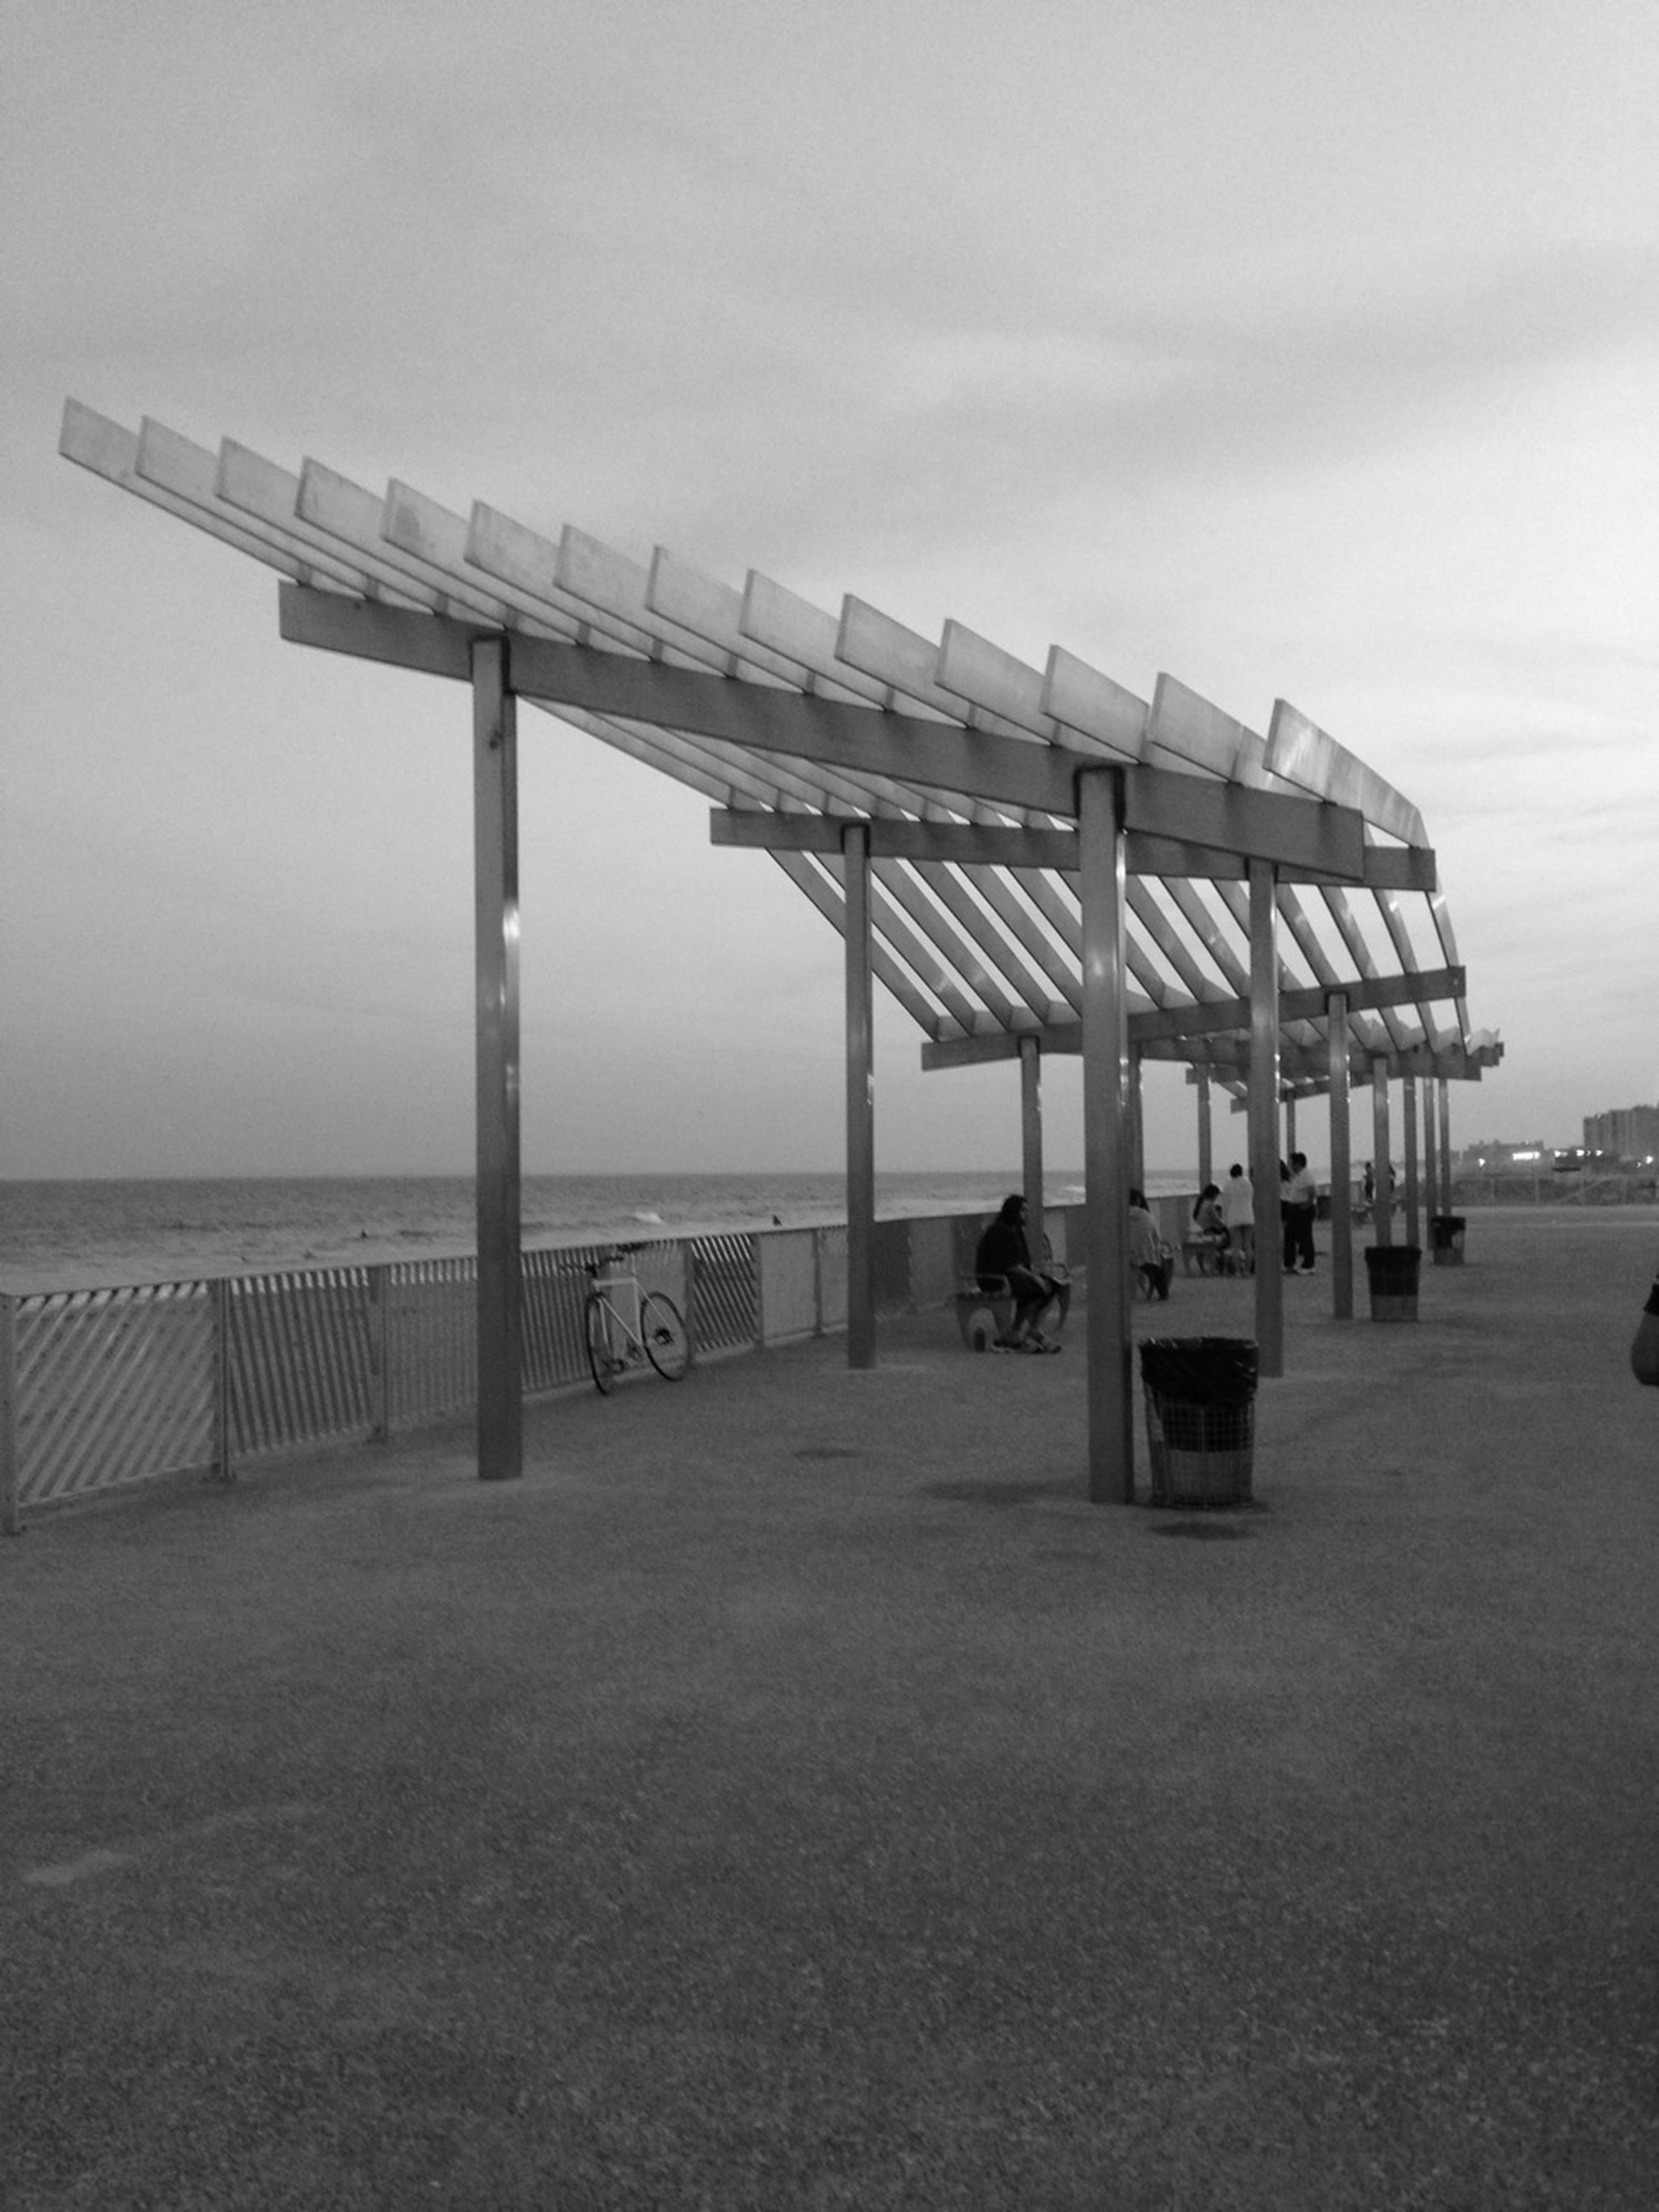 sea, beach, built structure, water, architecture, horizon over water, sky, sand, shore, pier, incidental people, tranquility, tranquil scene, day, nature, building exterior, outdoors, cloud - sky, railing, scenics